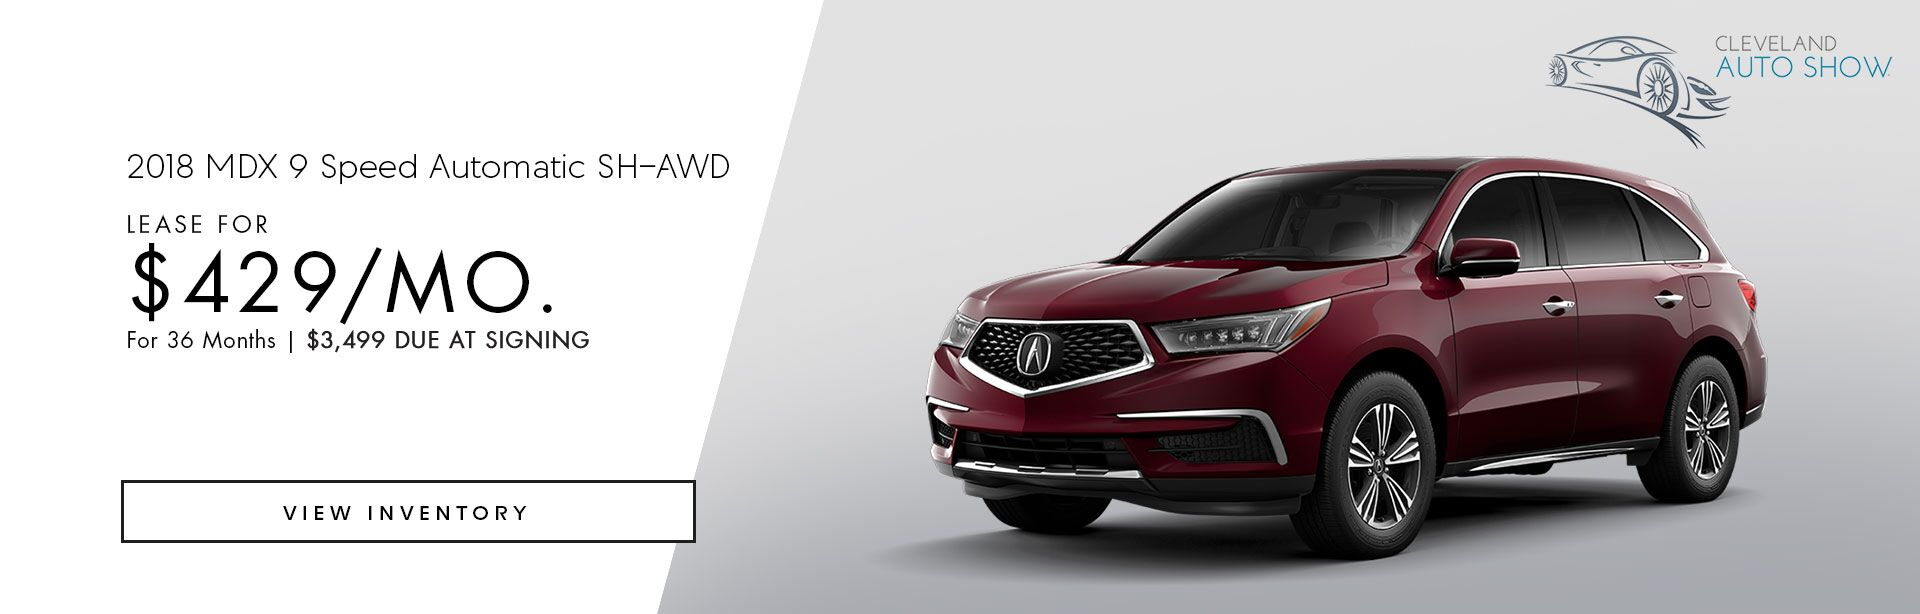 2018 Acura MDX 9 Speed Automatic SH-AWD